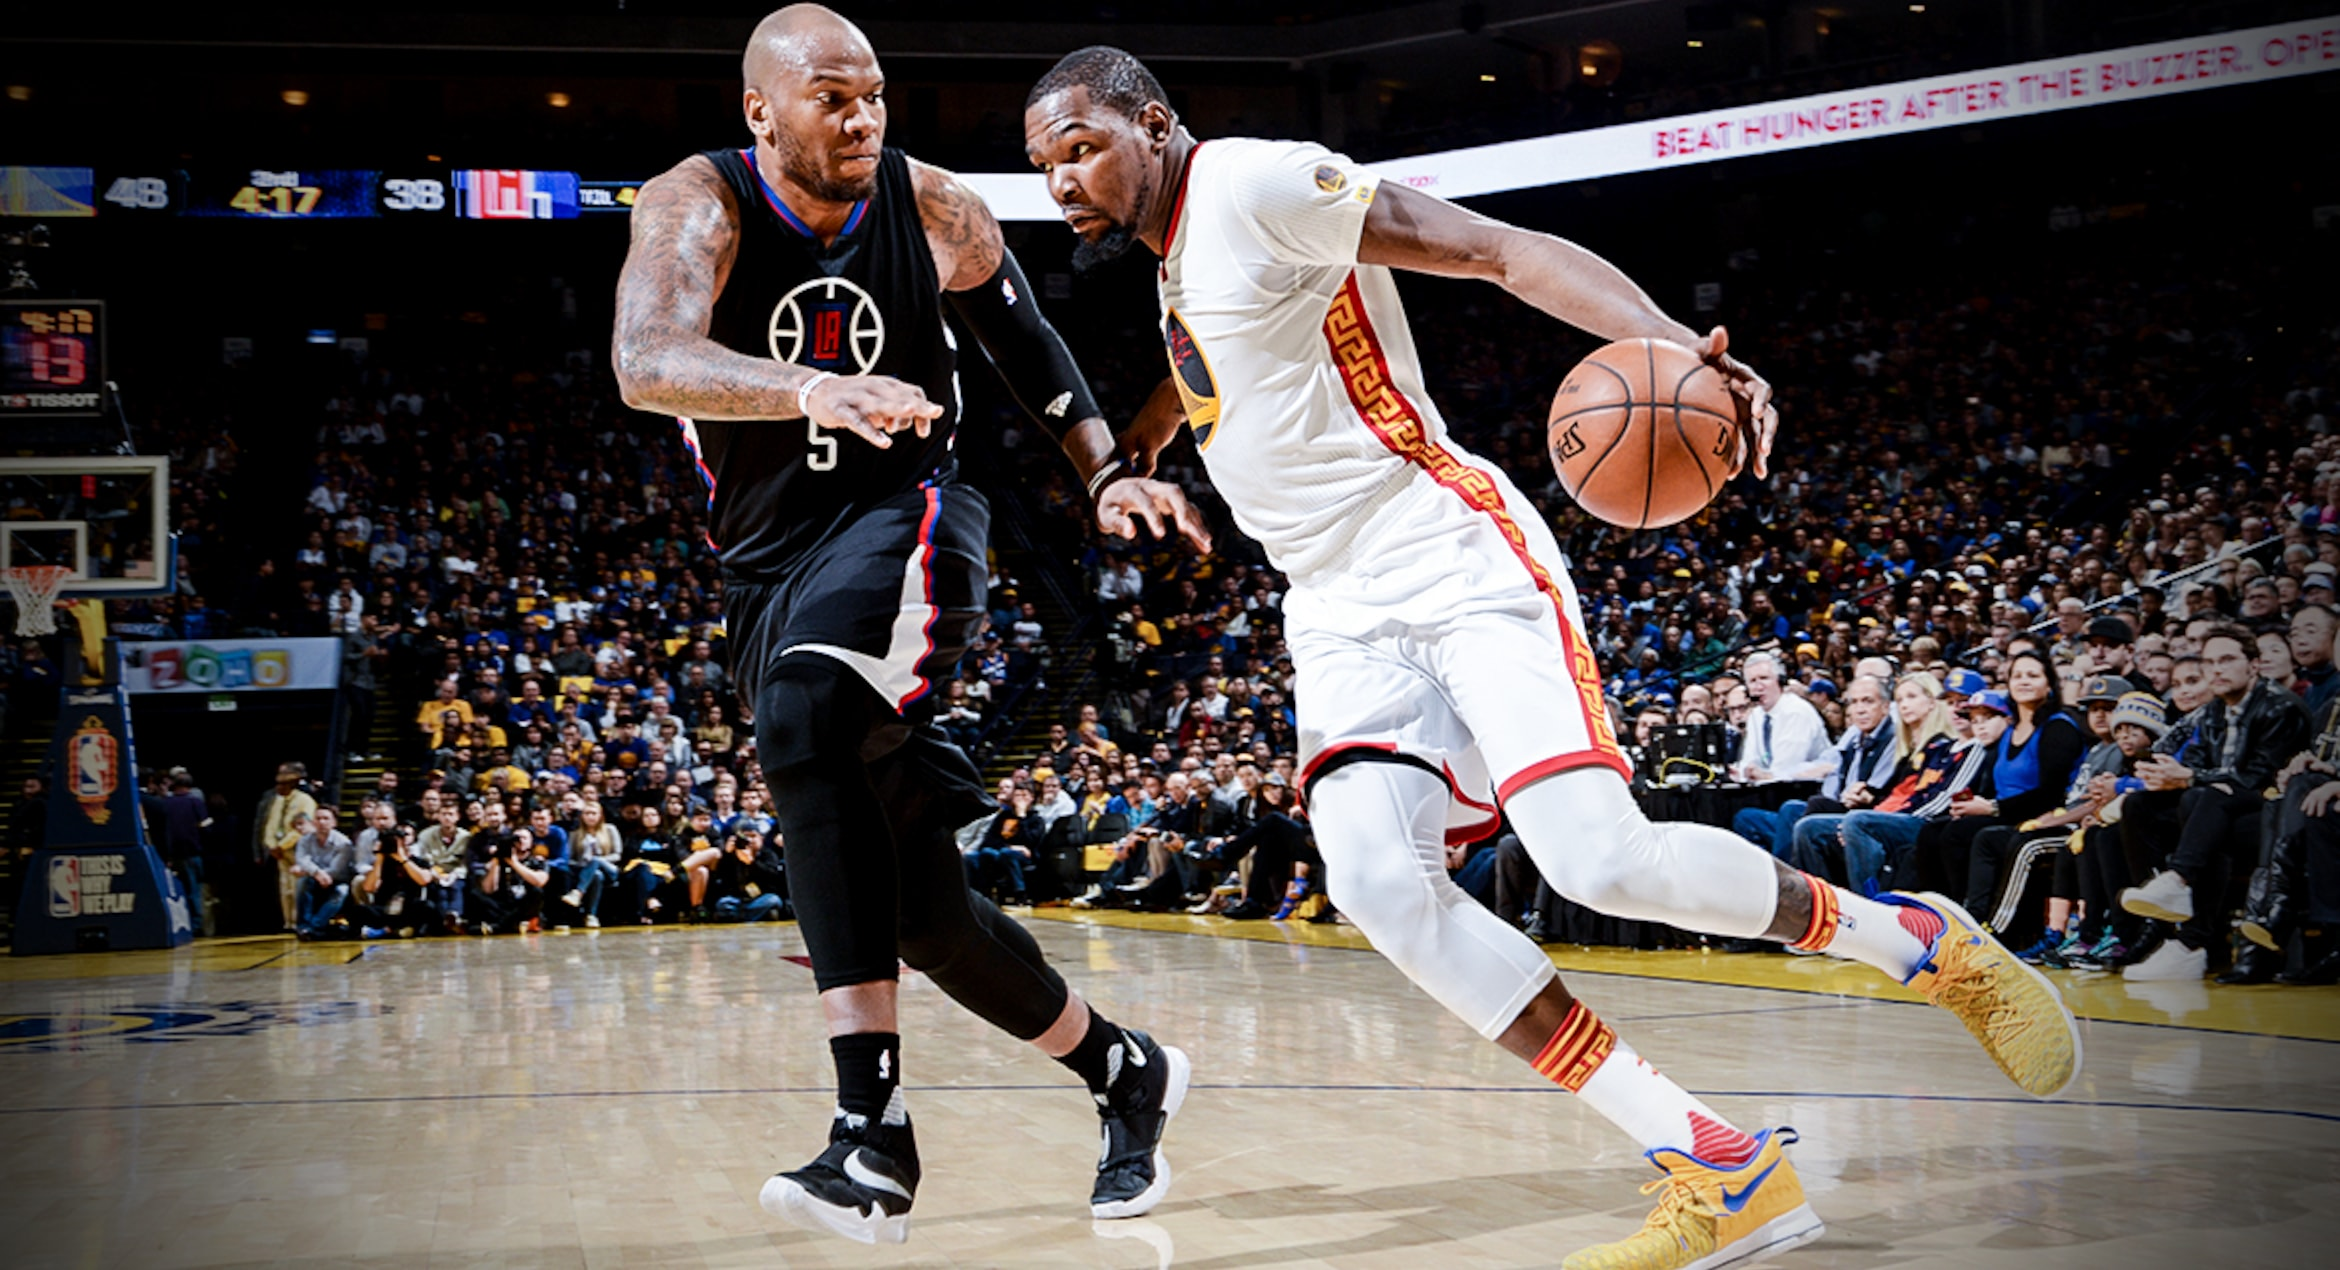 Speights Returns To Oracle, Where His 3-Point Shot First Developed